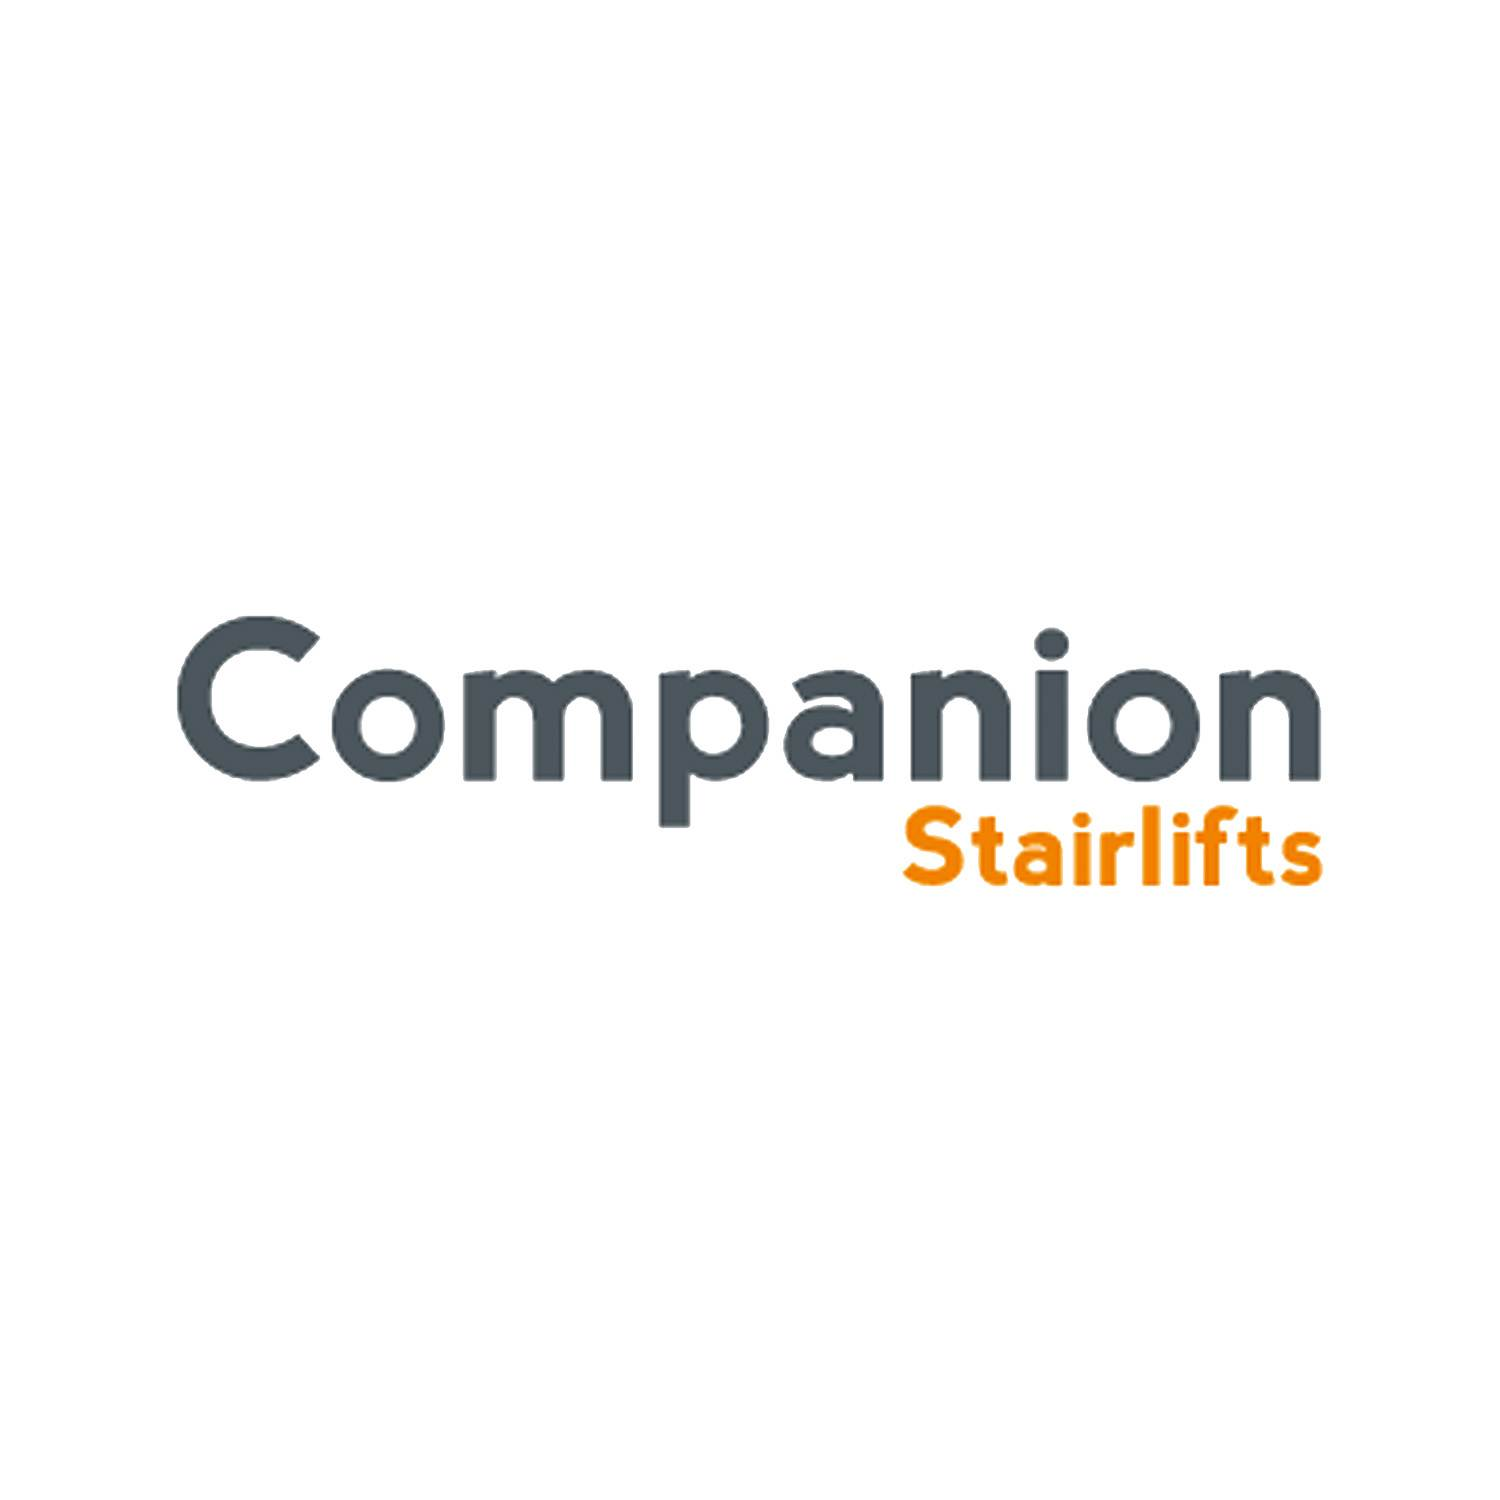 companionstairlifts